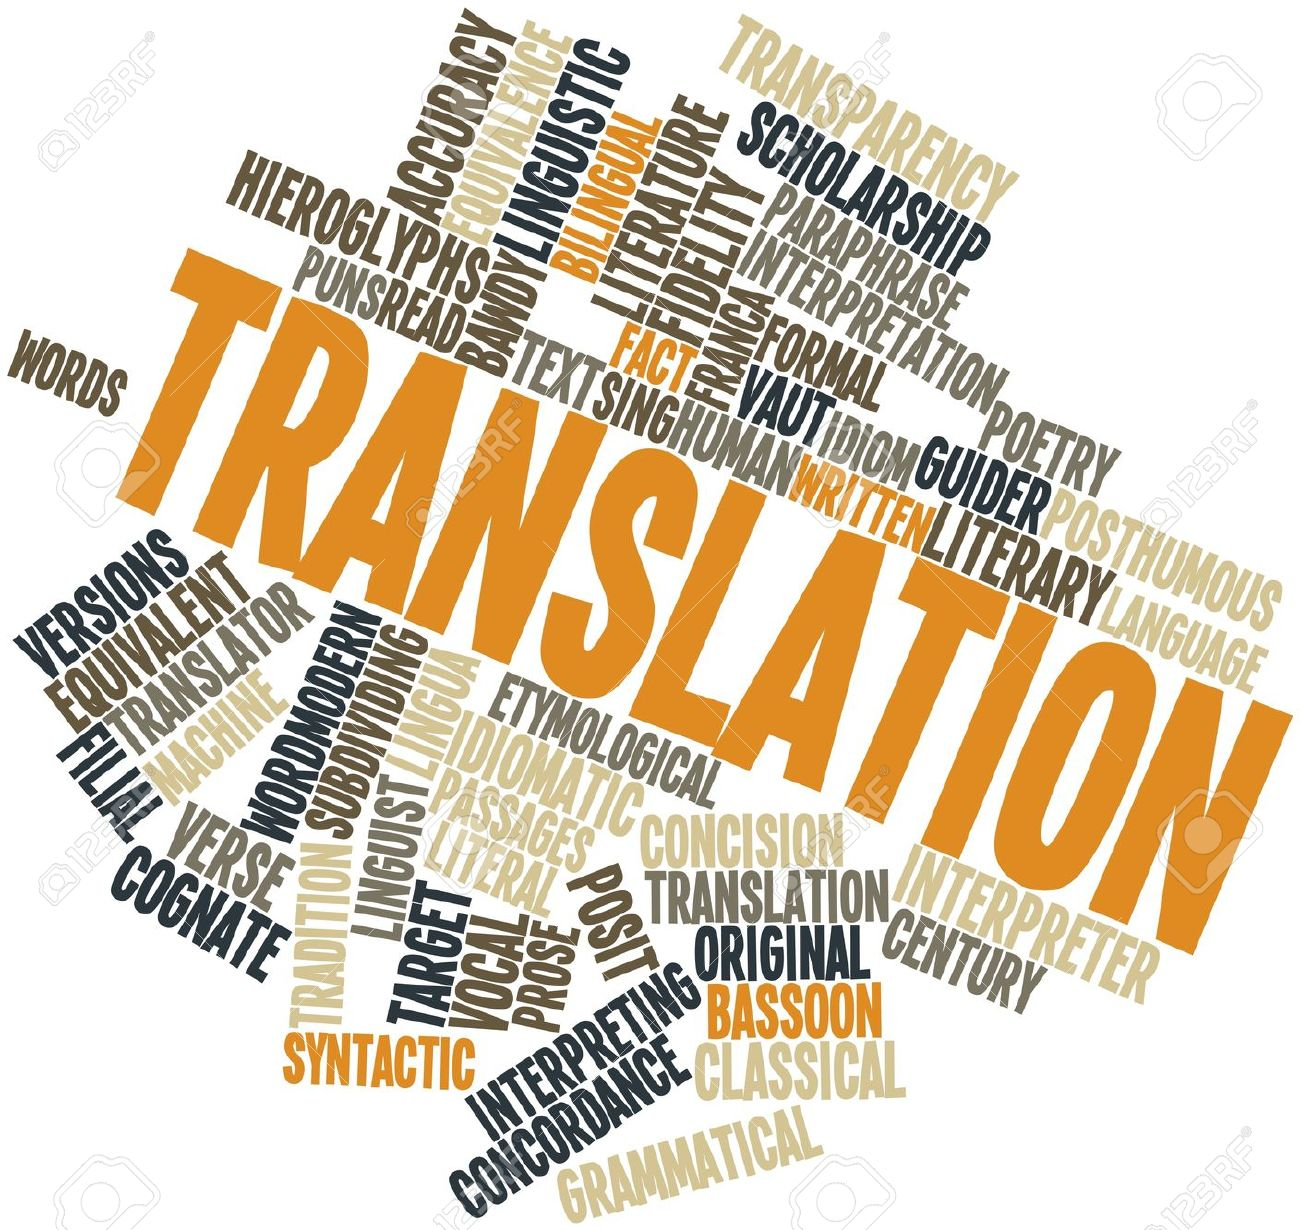 Our newest translation service is now live! - Multilingualizer